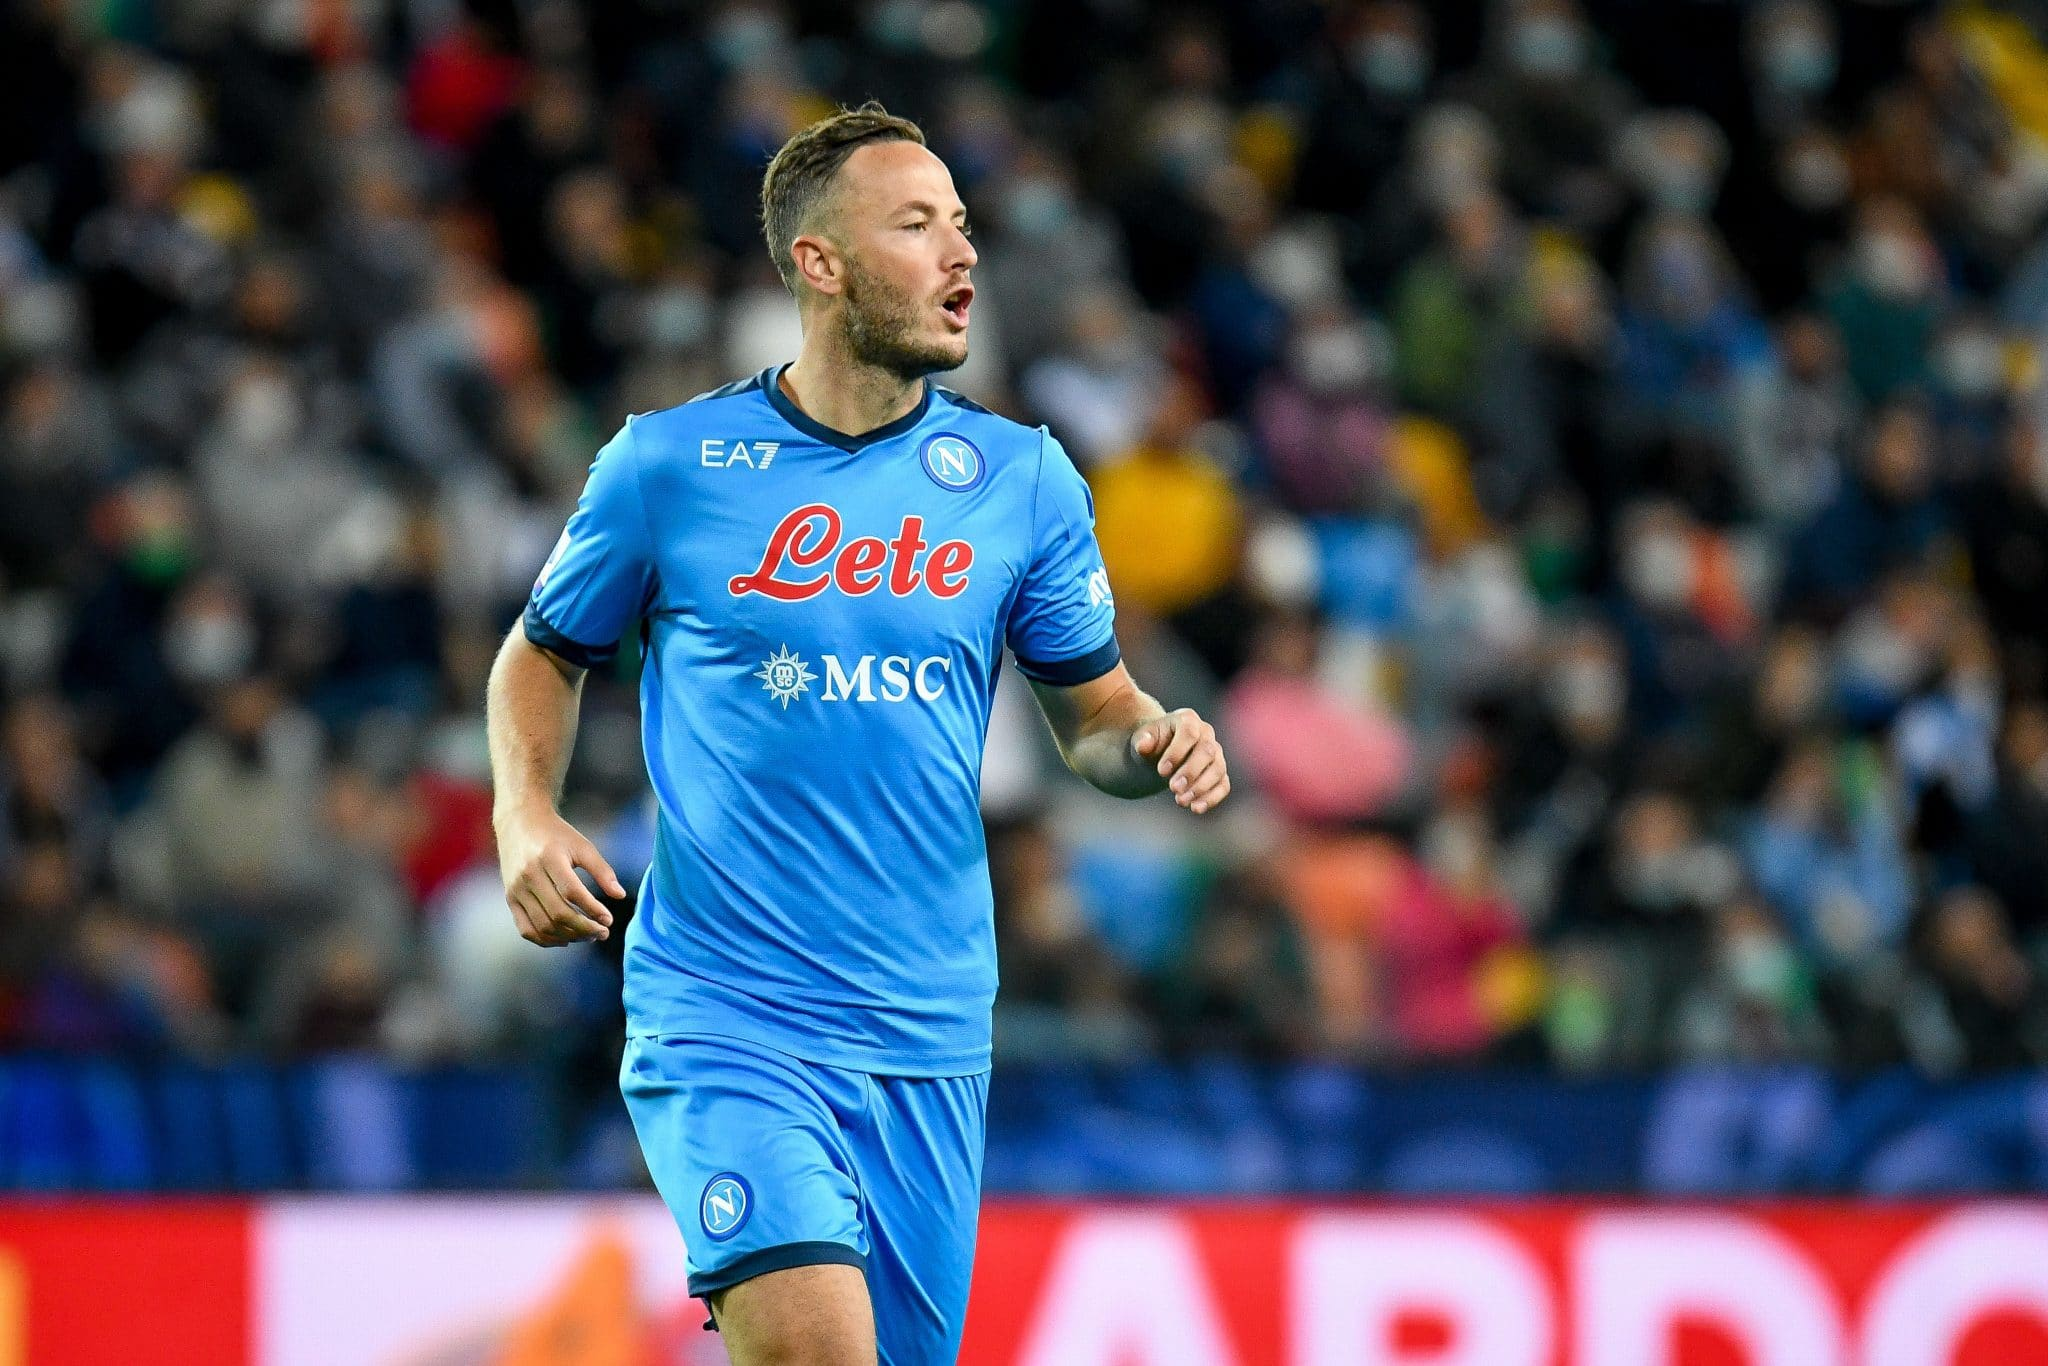 Amir Rrahmani (Napoli) during the Italian football Serie A match Udinese Calcio vs SSC Napoli on September 20, 2021 at the Friuli - Dacia Arena stadium in Udine, Italy (Photo by Ettore Griffoni/LiveMedia/NurPhoto via Getty Images)